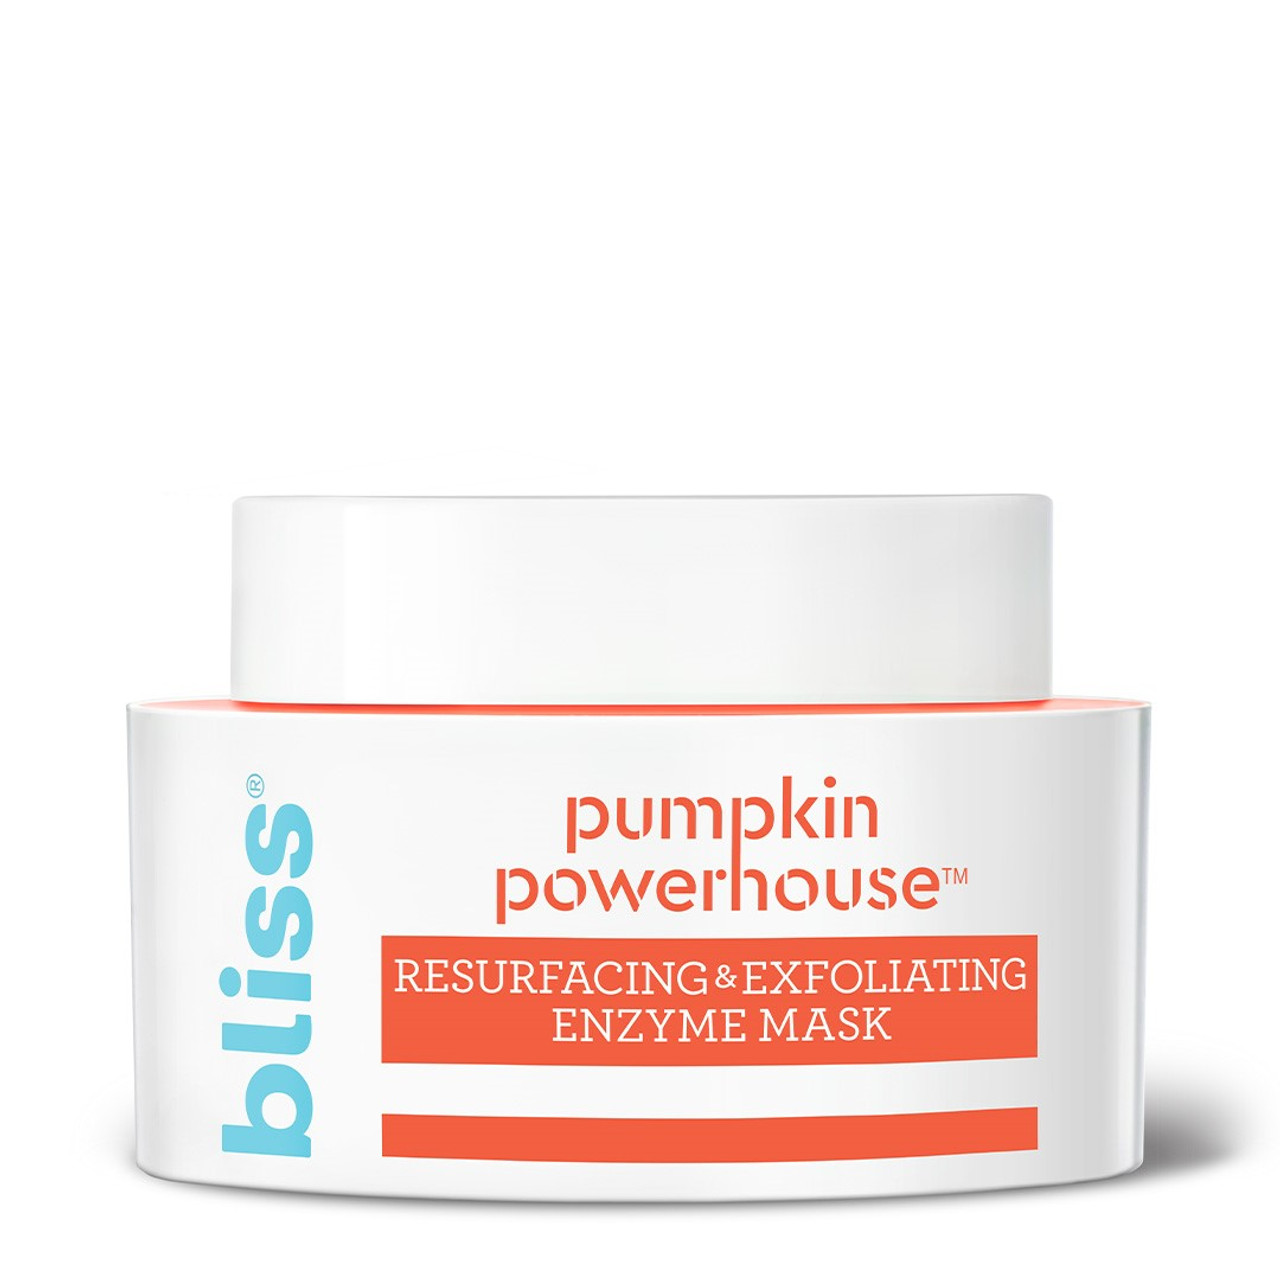 New! - Pumpkin Powerhouse Mask